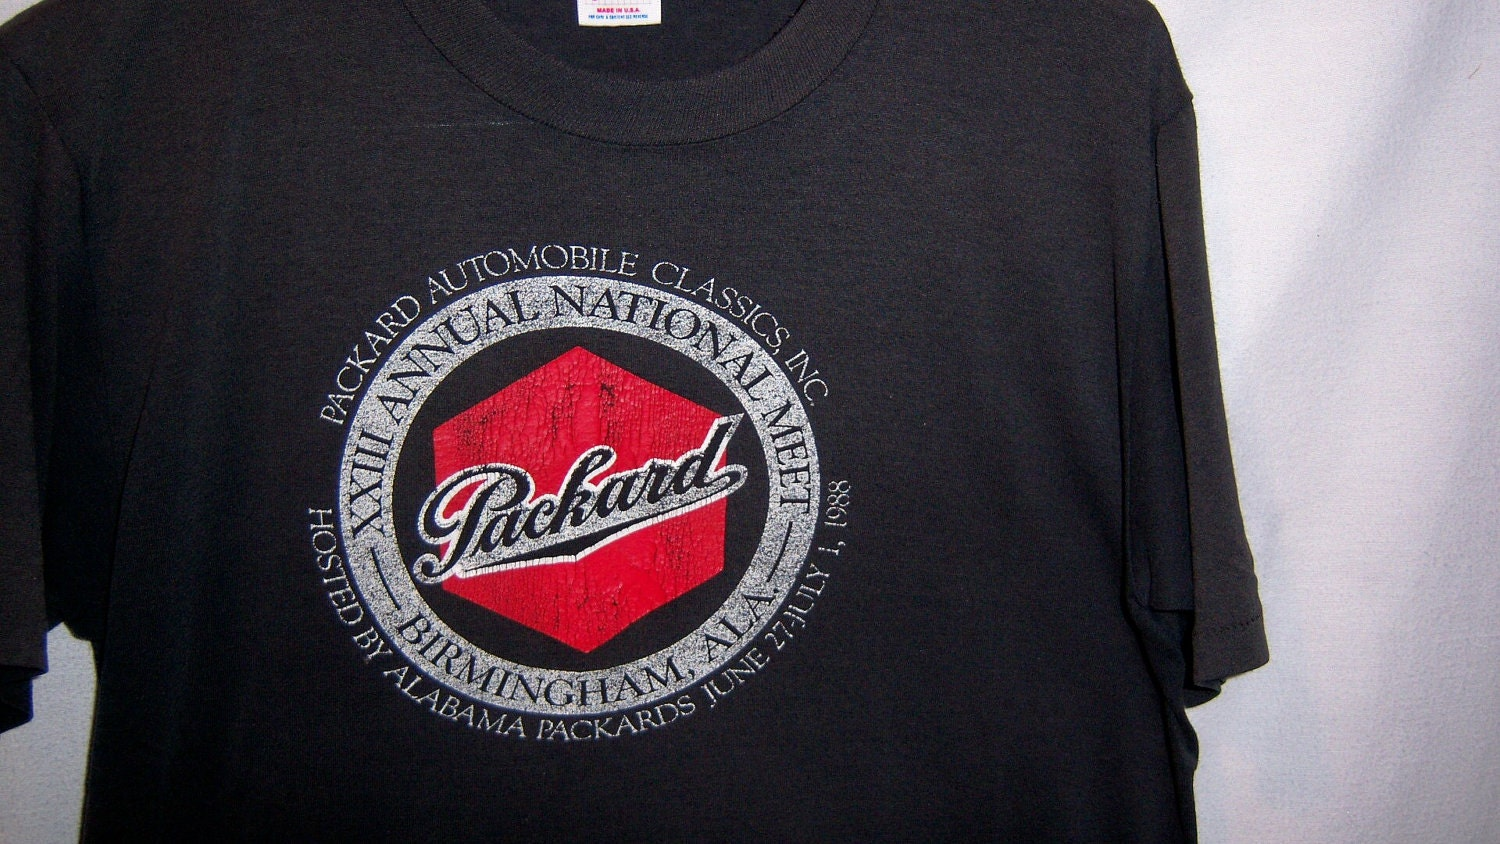 Vintage 1988 PACKARD Automobile Classics shirt. From thriftdeal